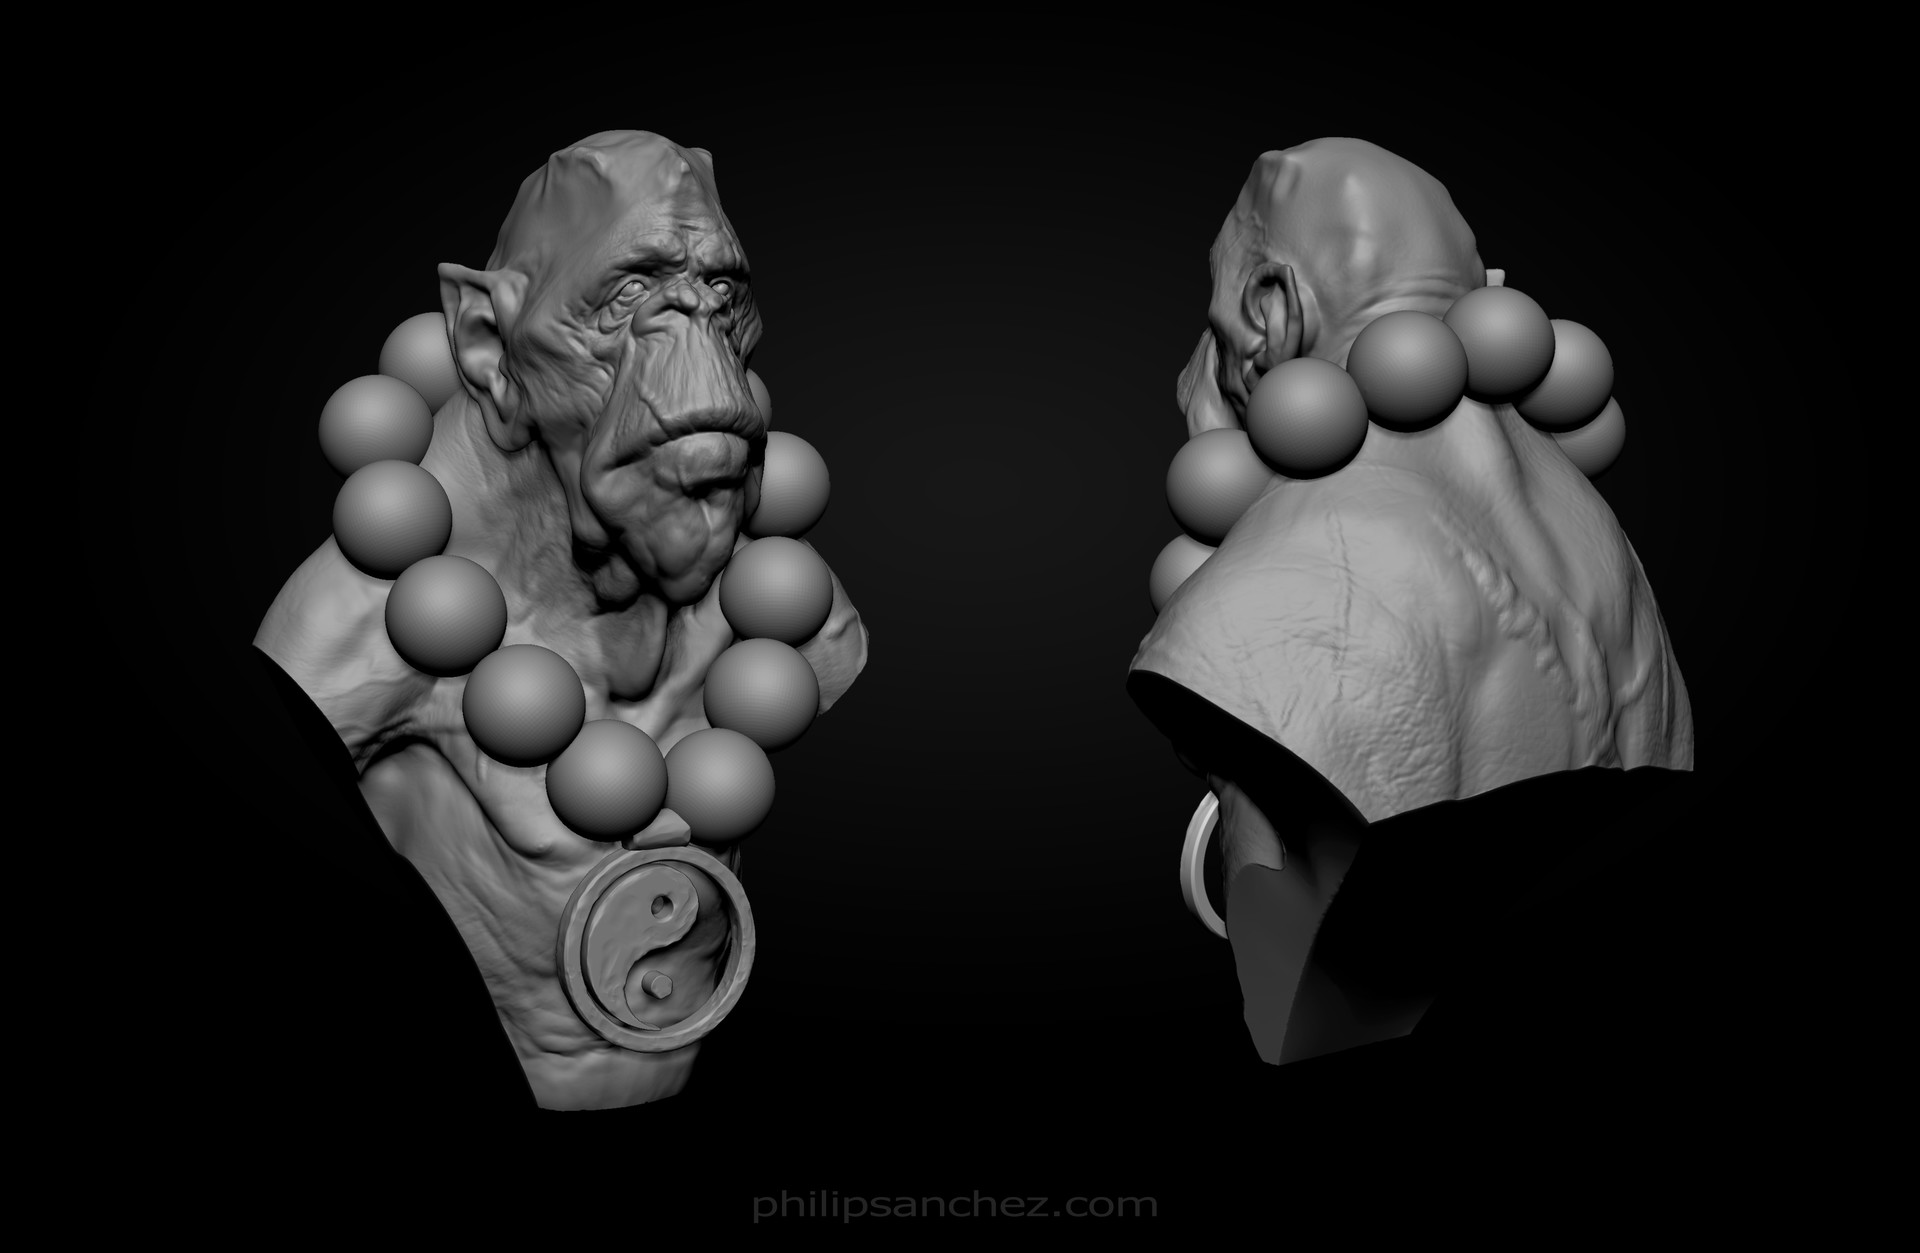 Philip sanchez frontback sculpt